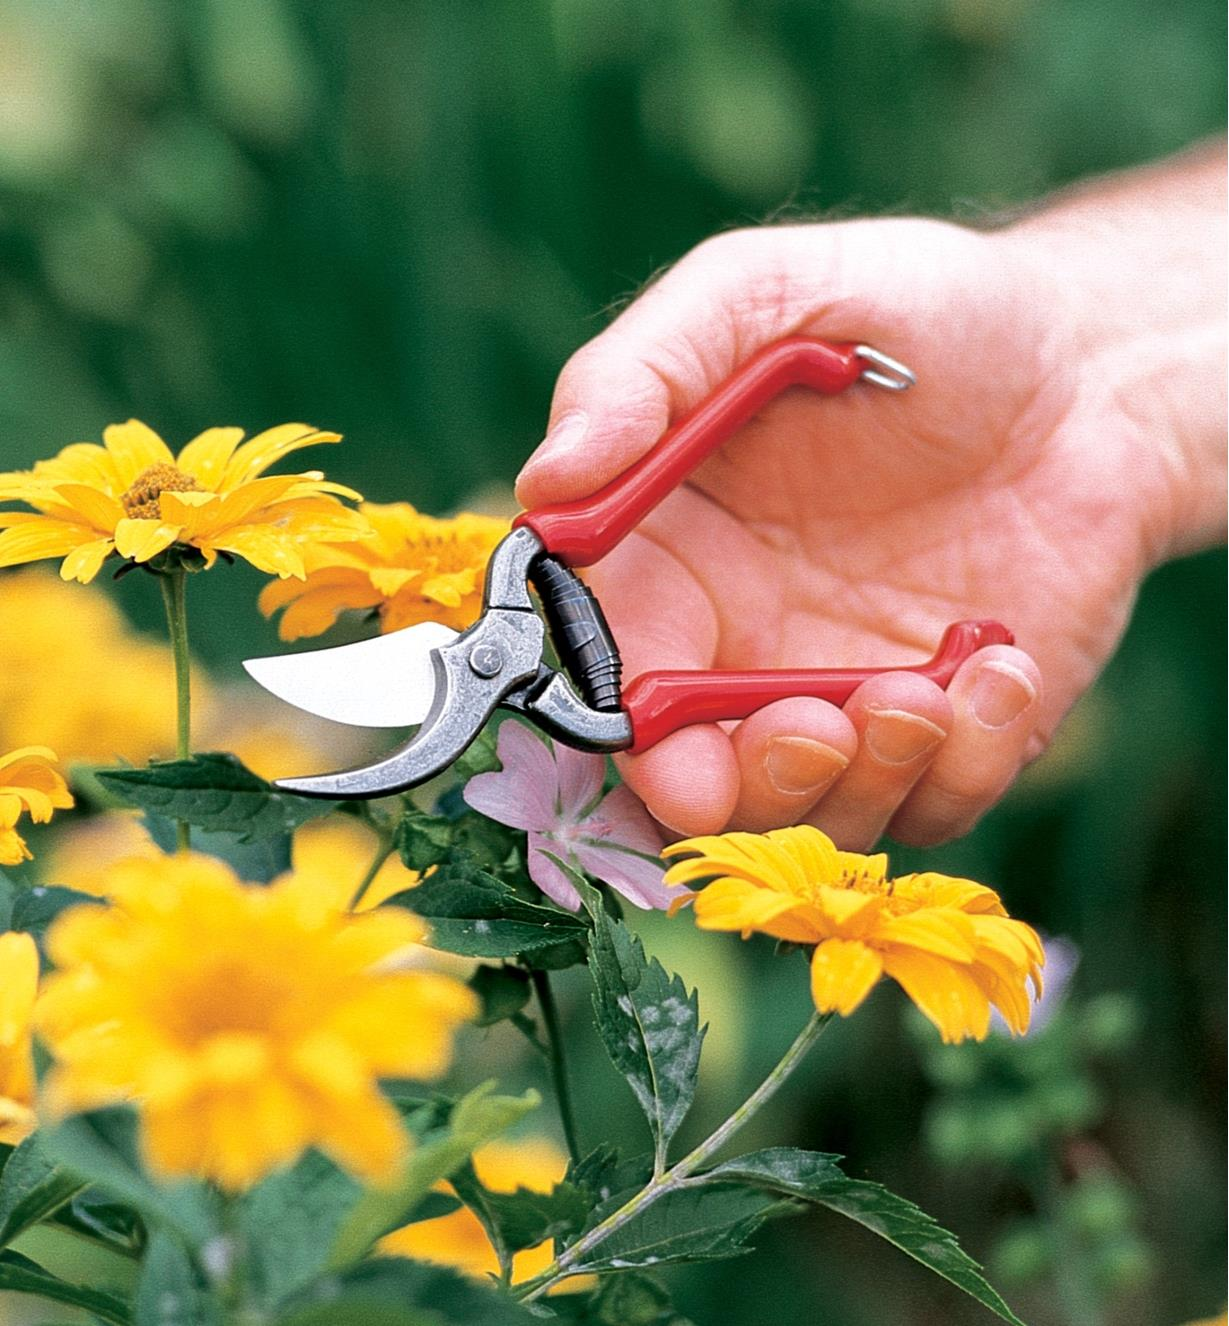 Forged Pocket Pruner being held above yellow flowers